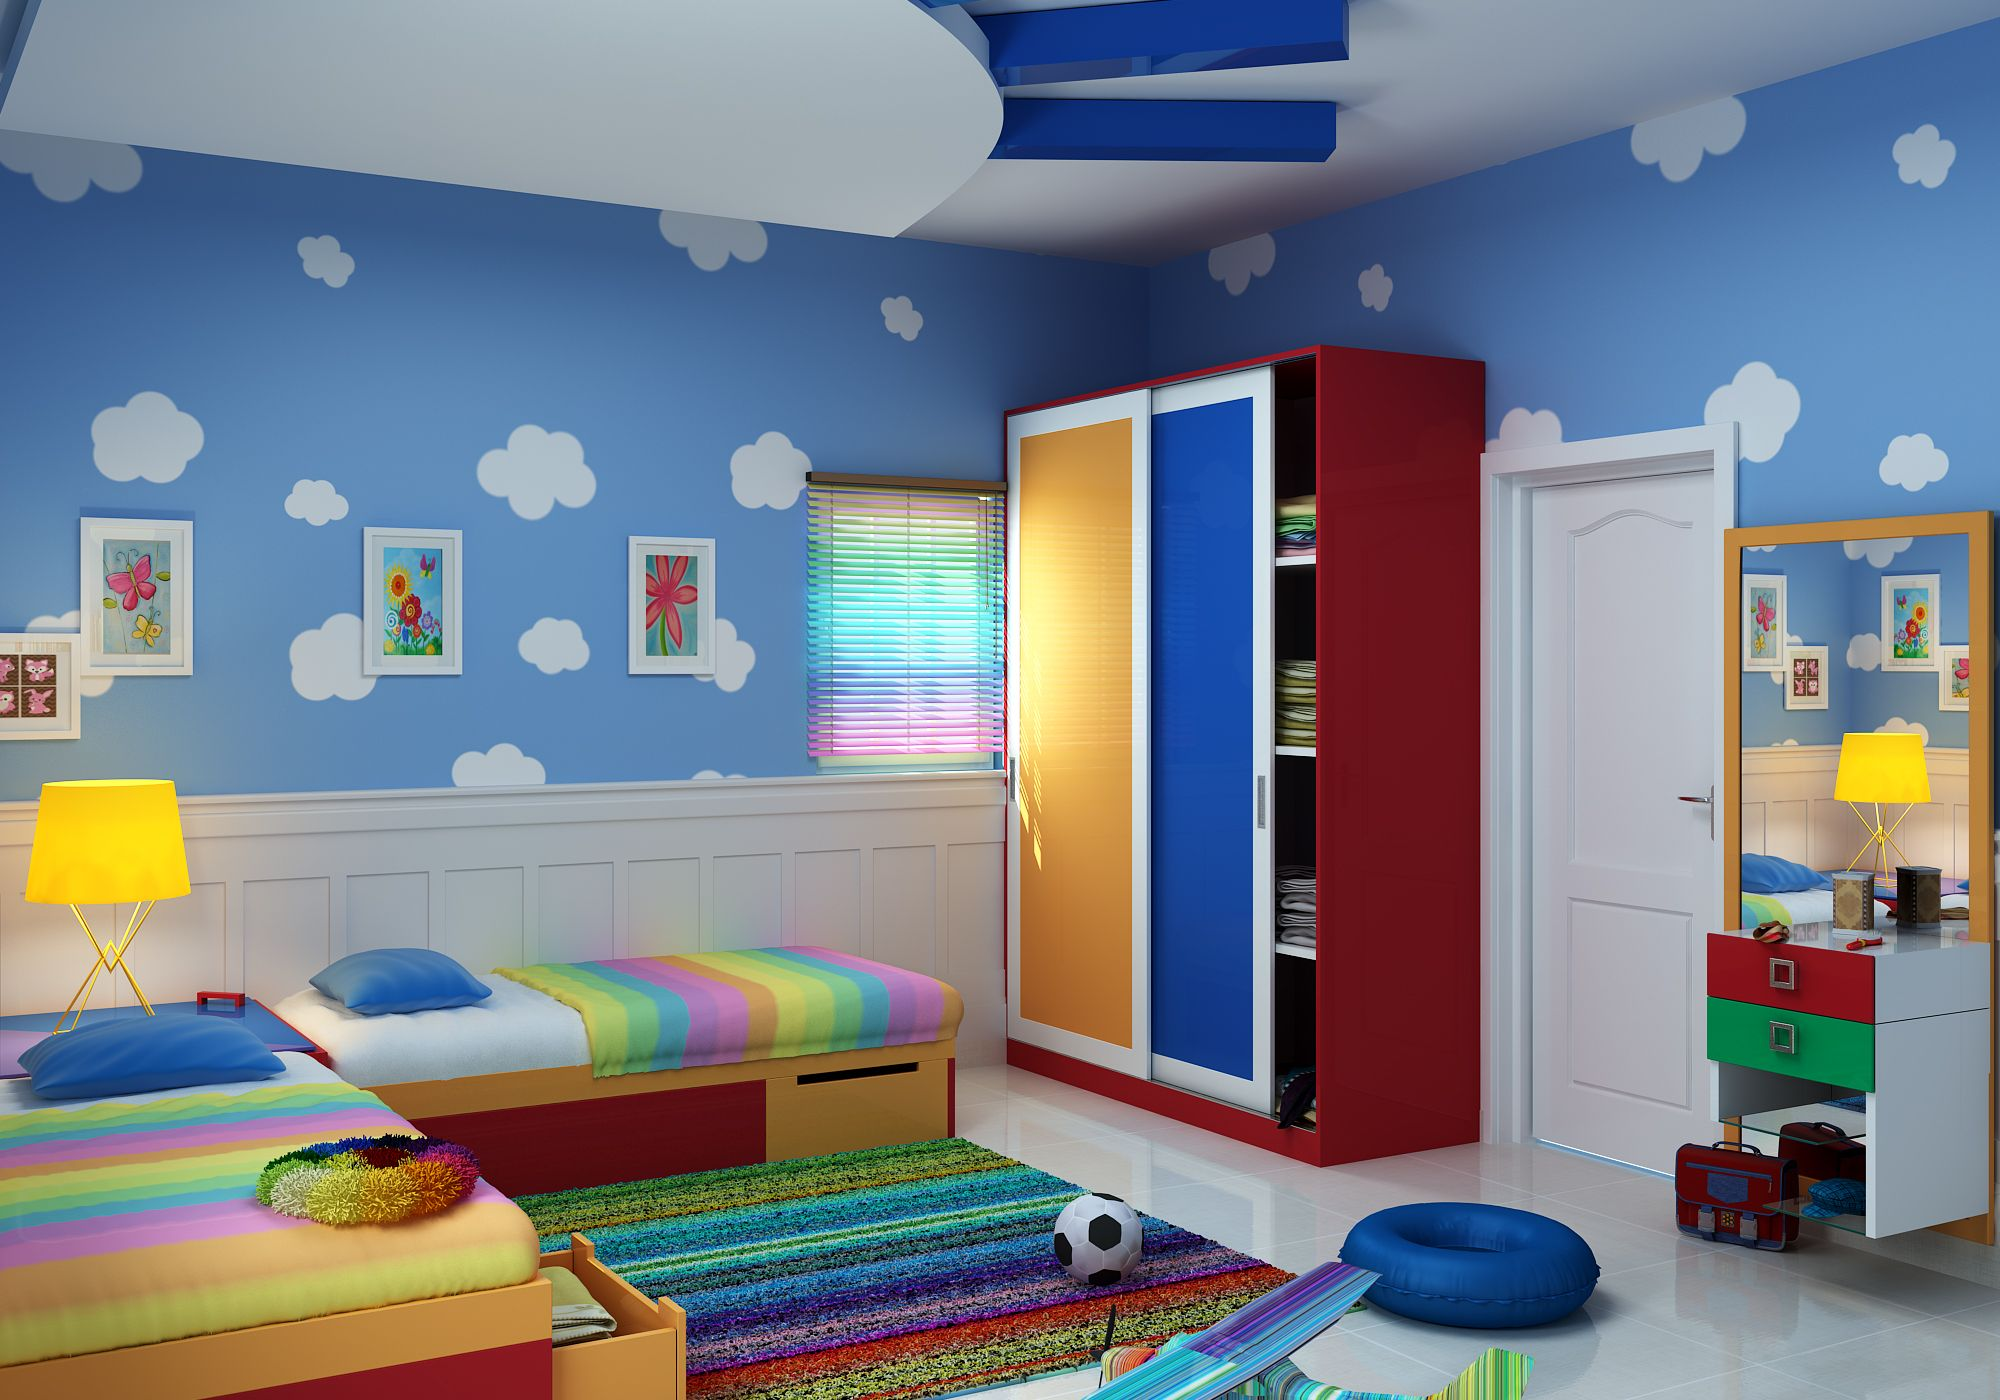 just a look the interior design for your kids.they give us different